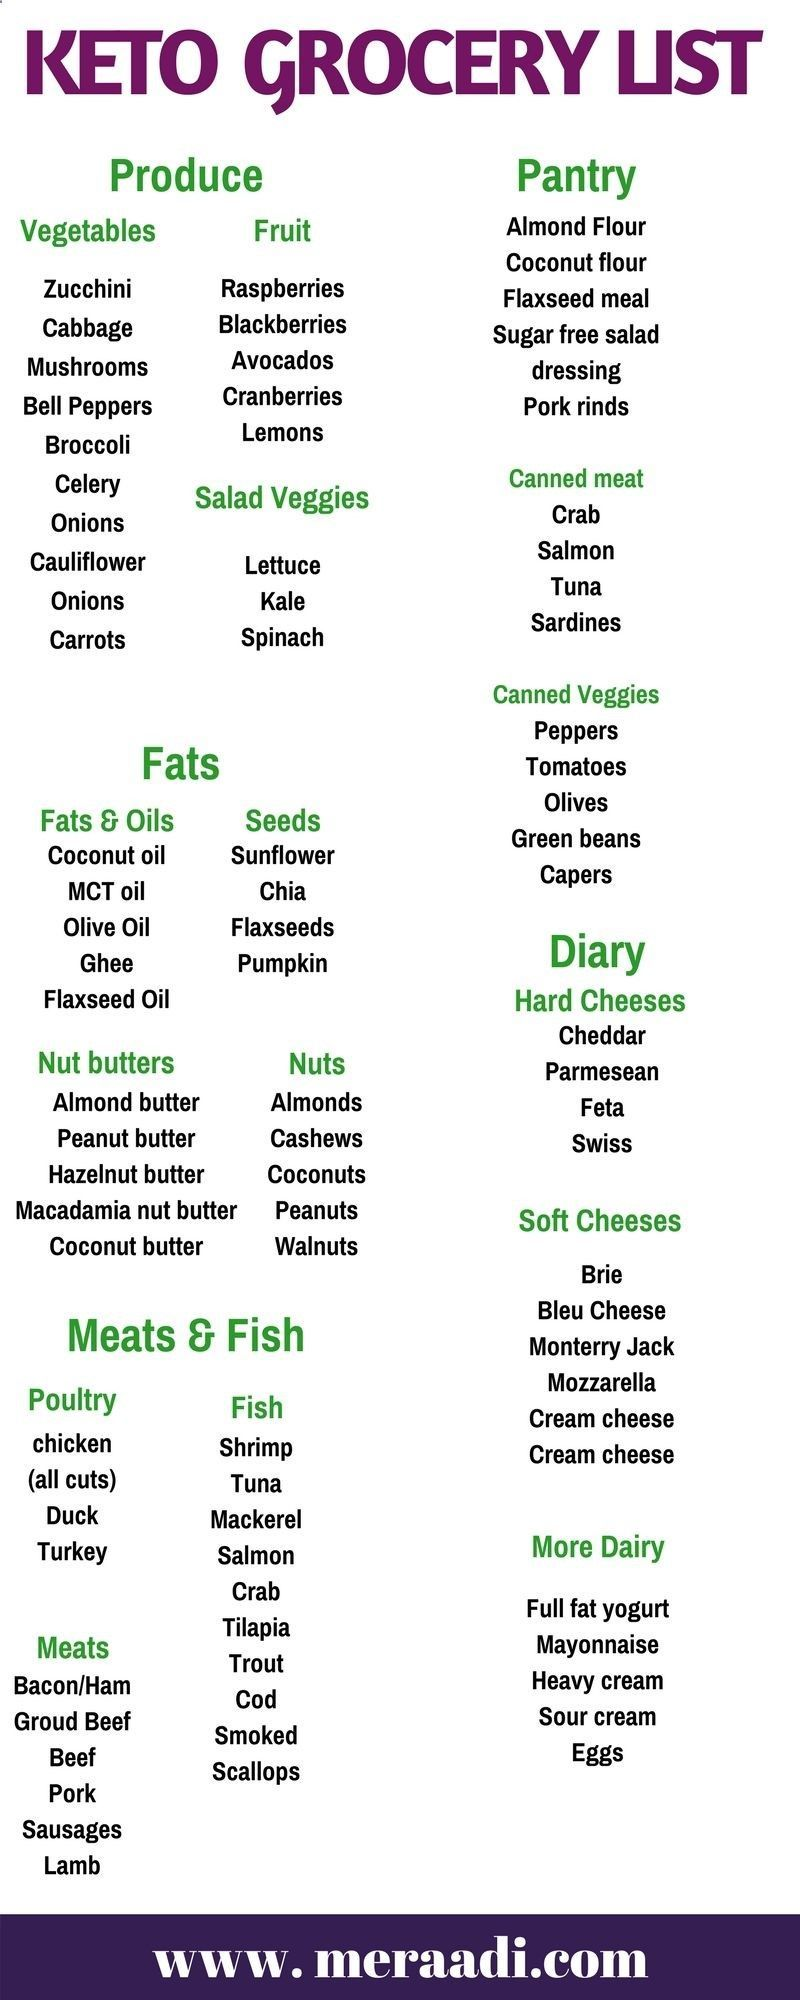 The 3 Week Diet Loss Weight Plan This Keto Grocery List Is The Best This Keto Shopping List